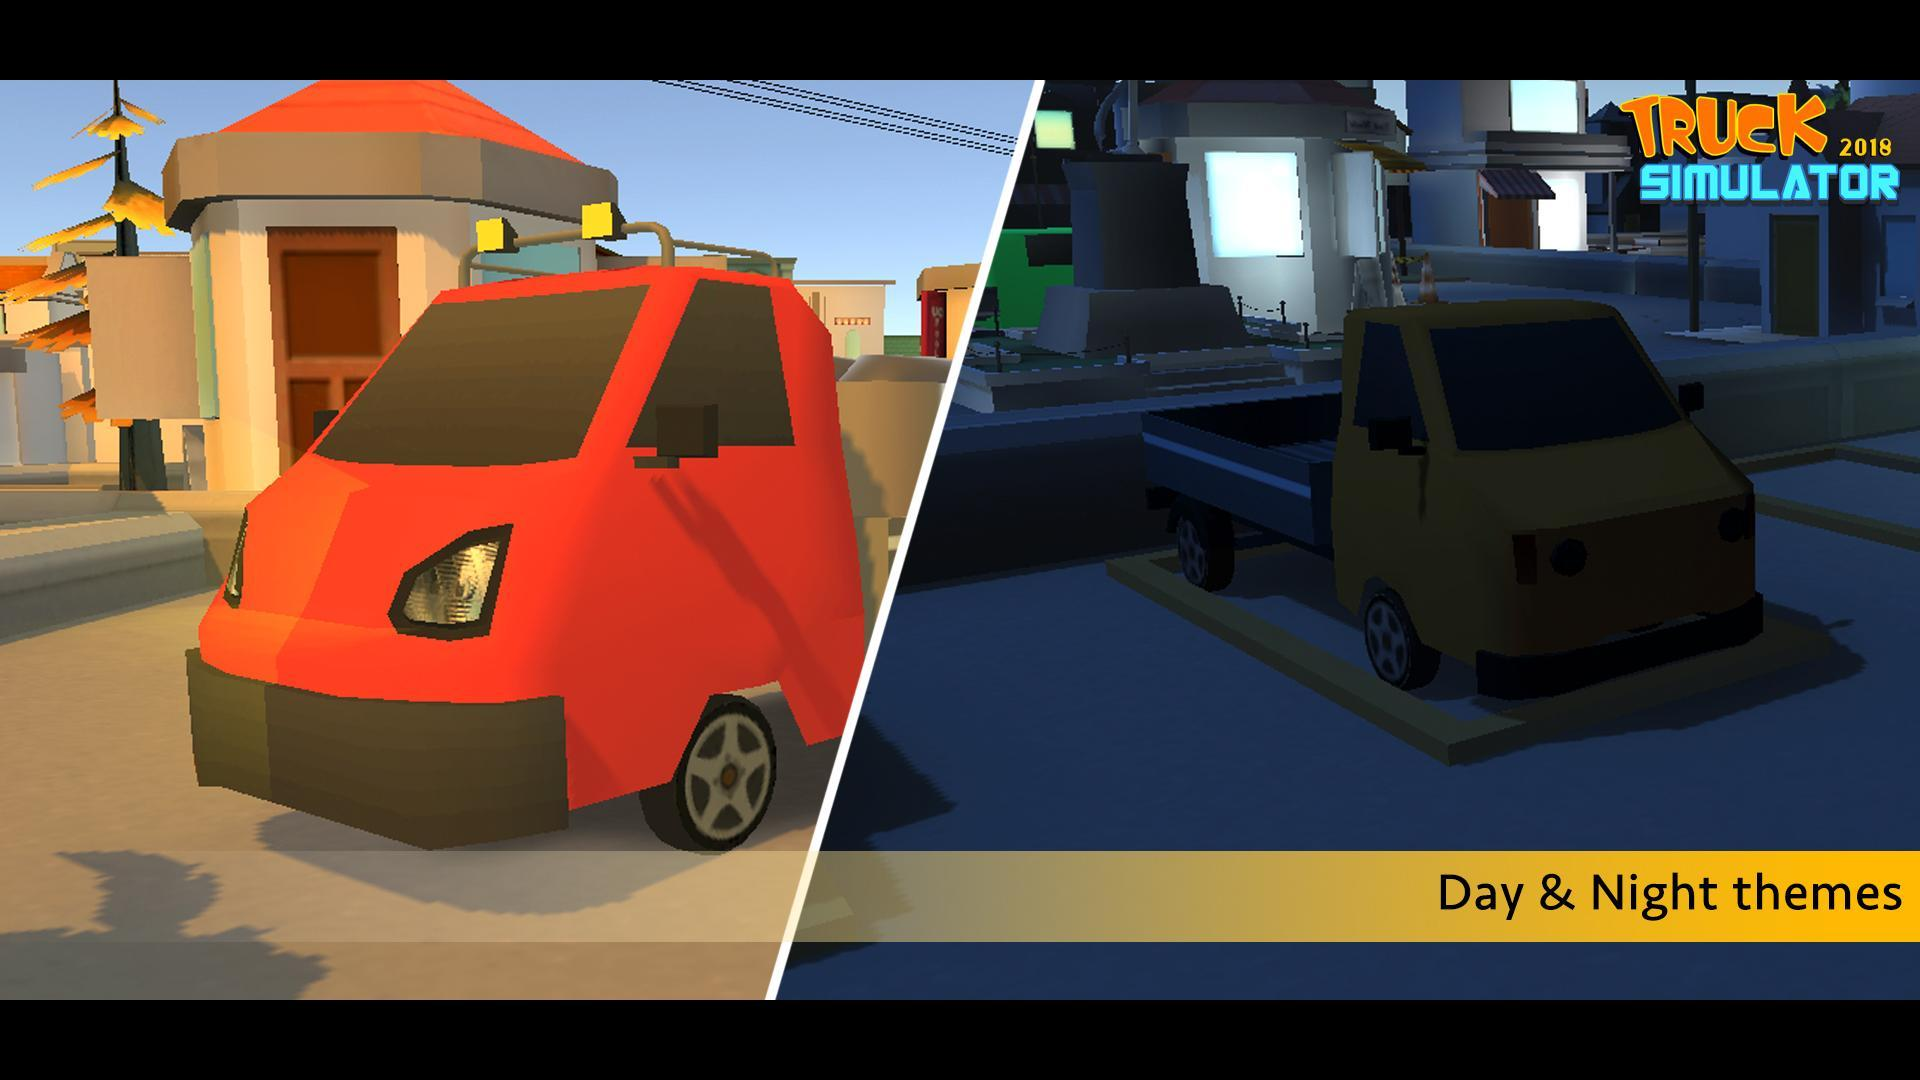 Logistics Truck Simulator 2018 for Android - APK Download